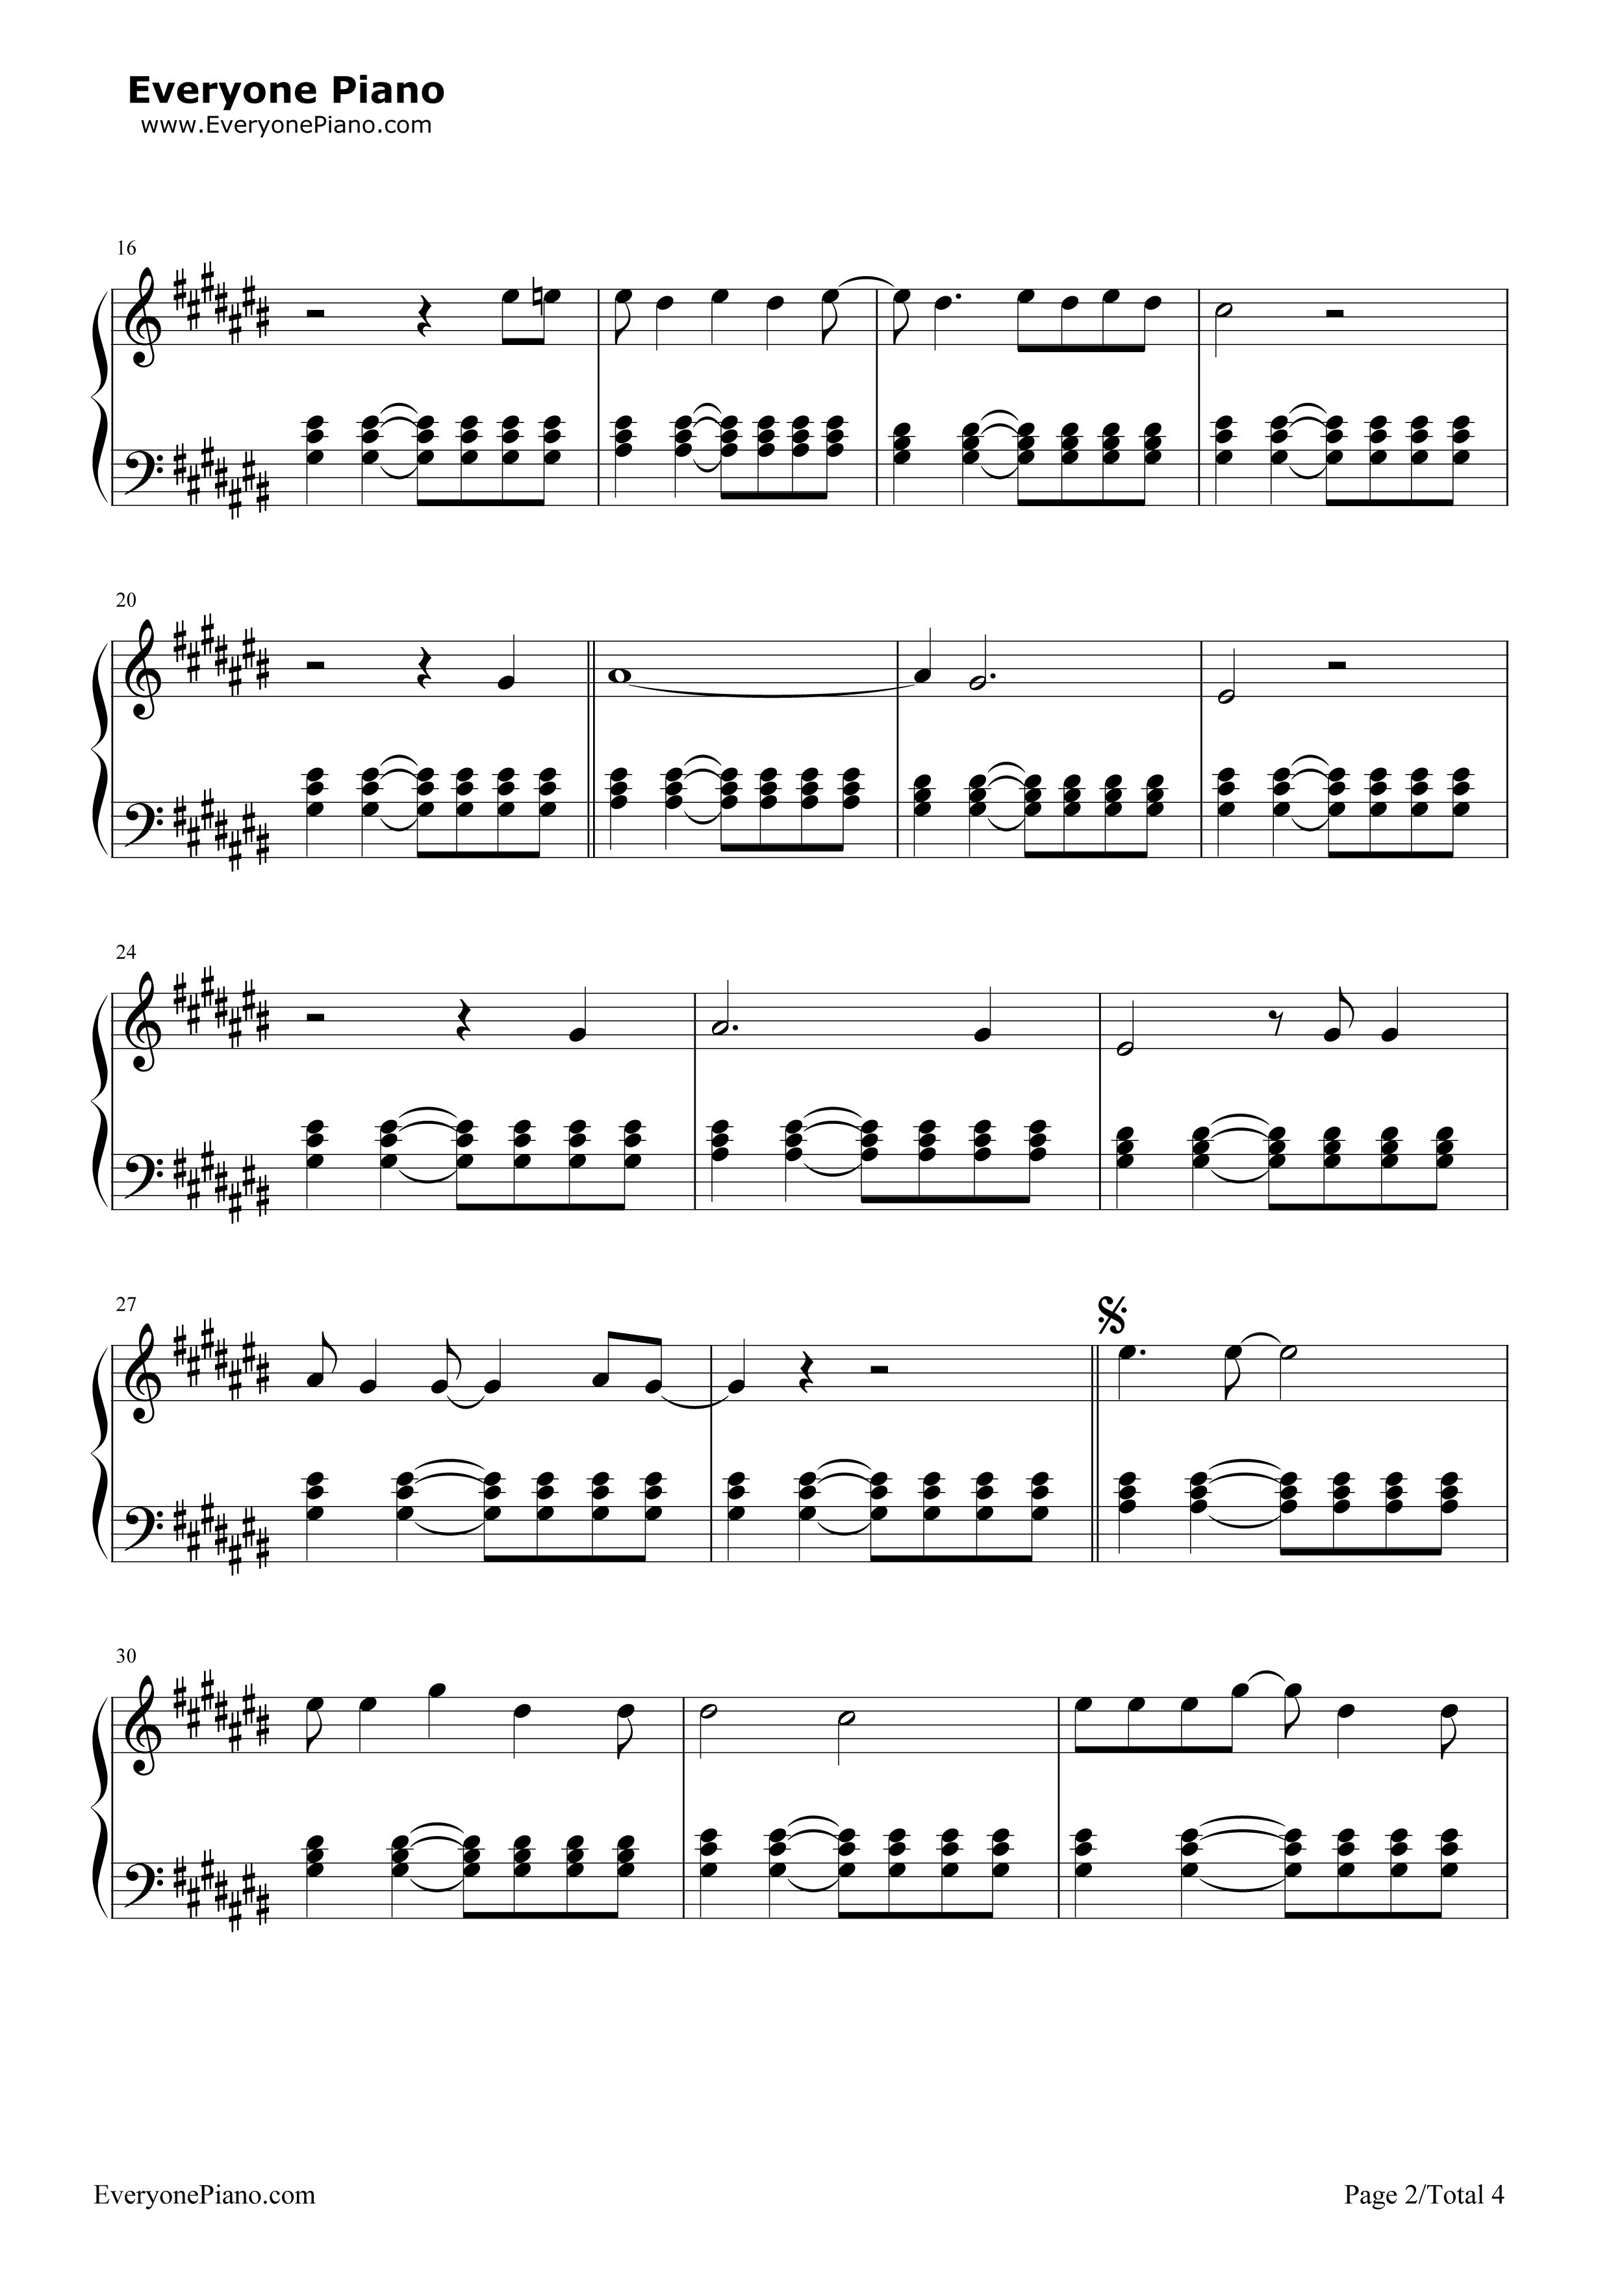 Riptide-Vance Joy Stave Preview 2-Free Piano Sheet Music u0026 Piano Chords